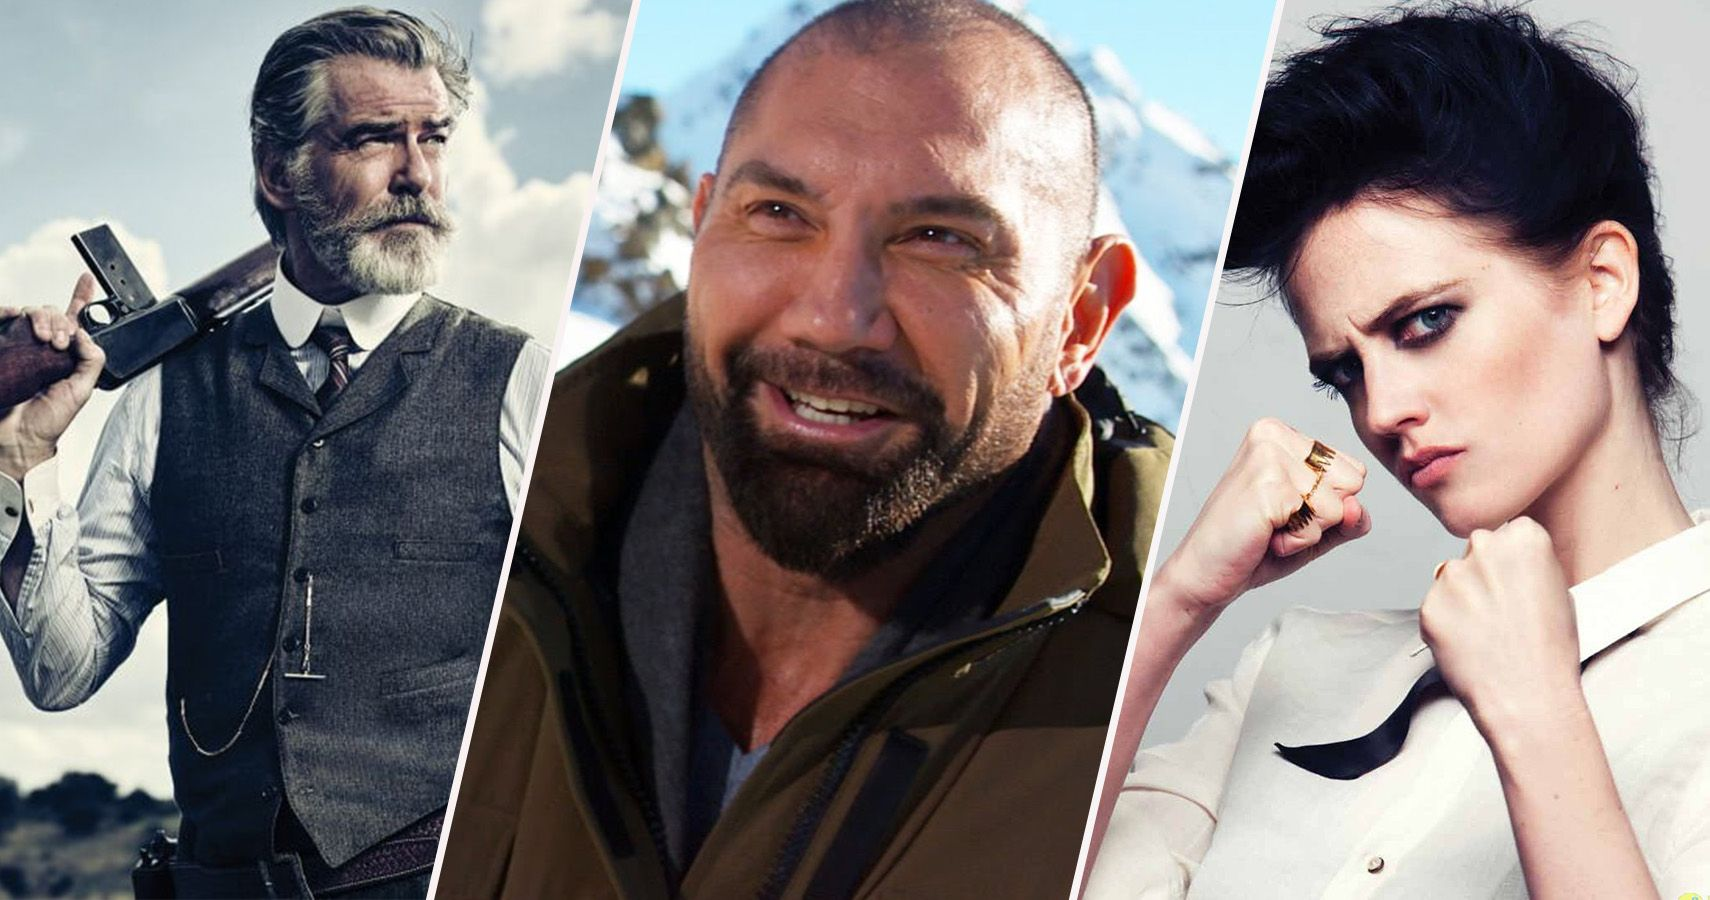 13 James Bond Stars Who Are Legitimately Tough (And 12 Who Are Only Tough Onscreen)